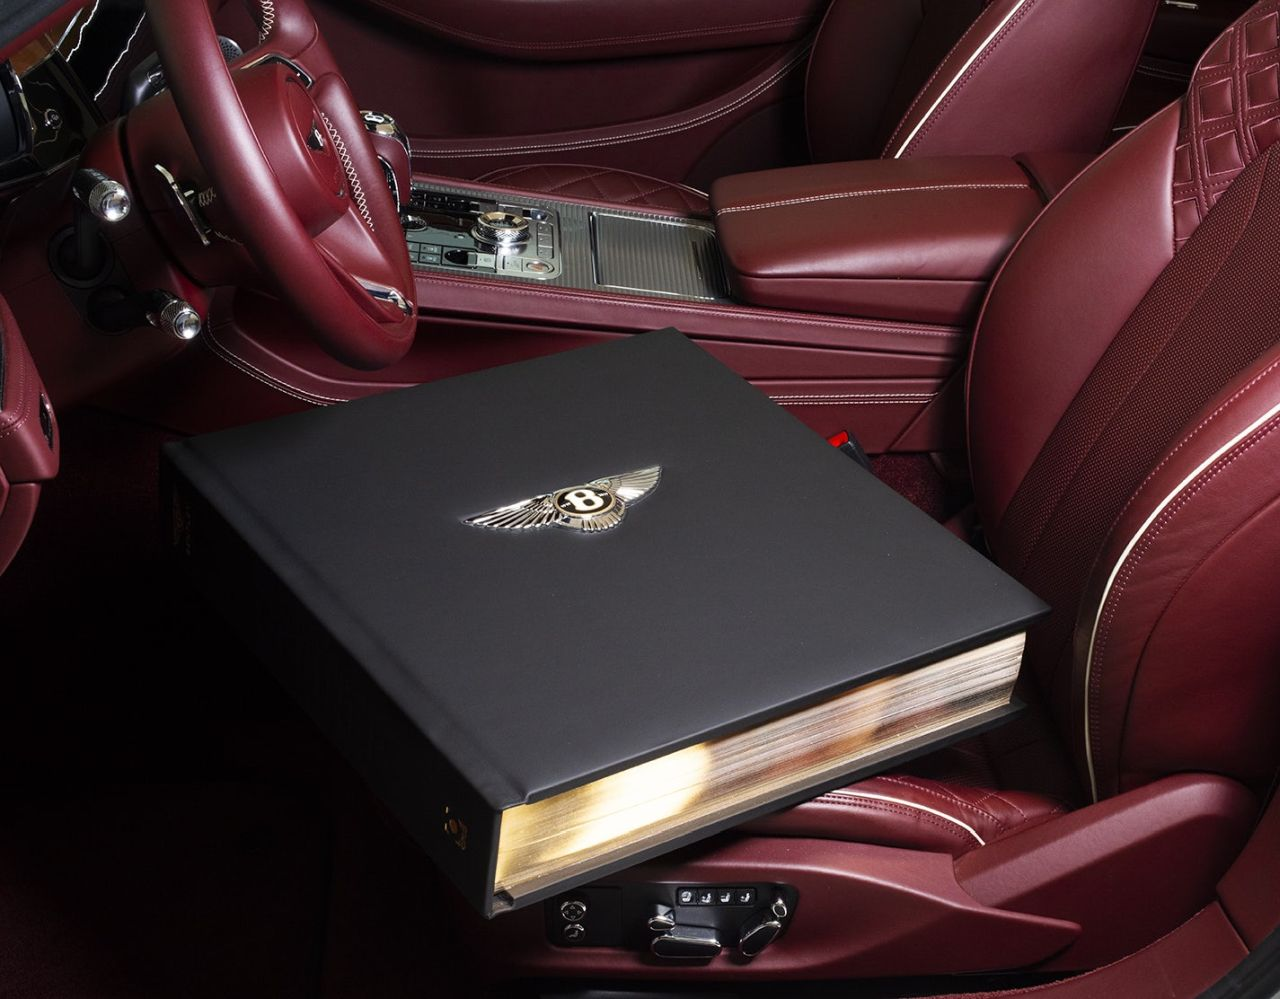 Bentley Centenary Opus-Coffee-Table-Book-1